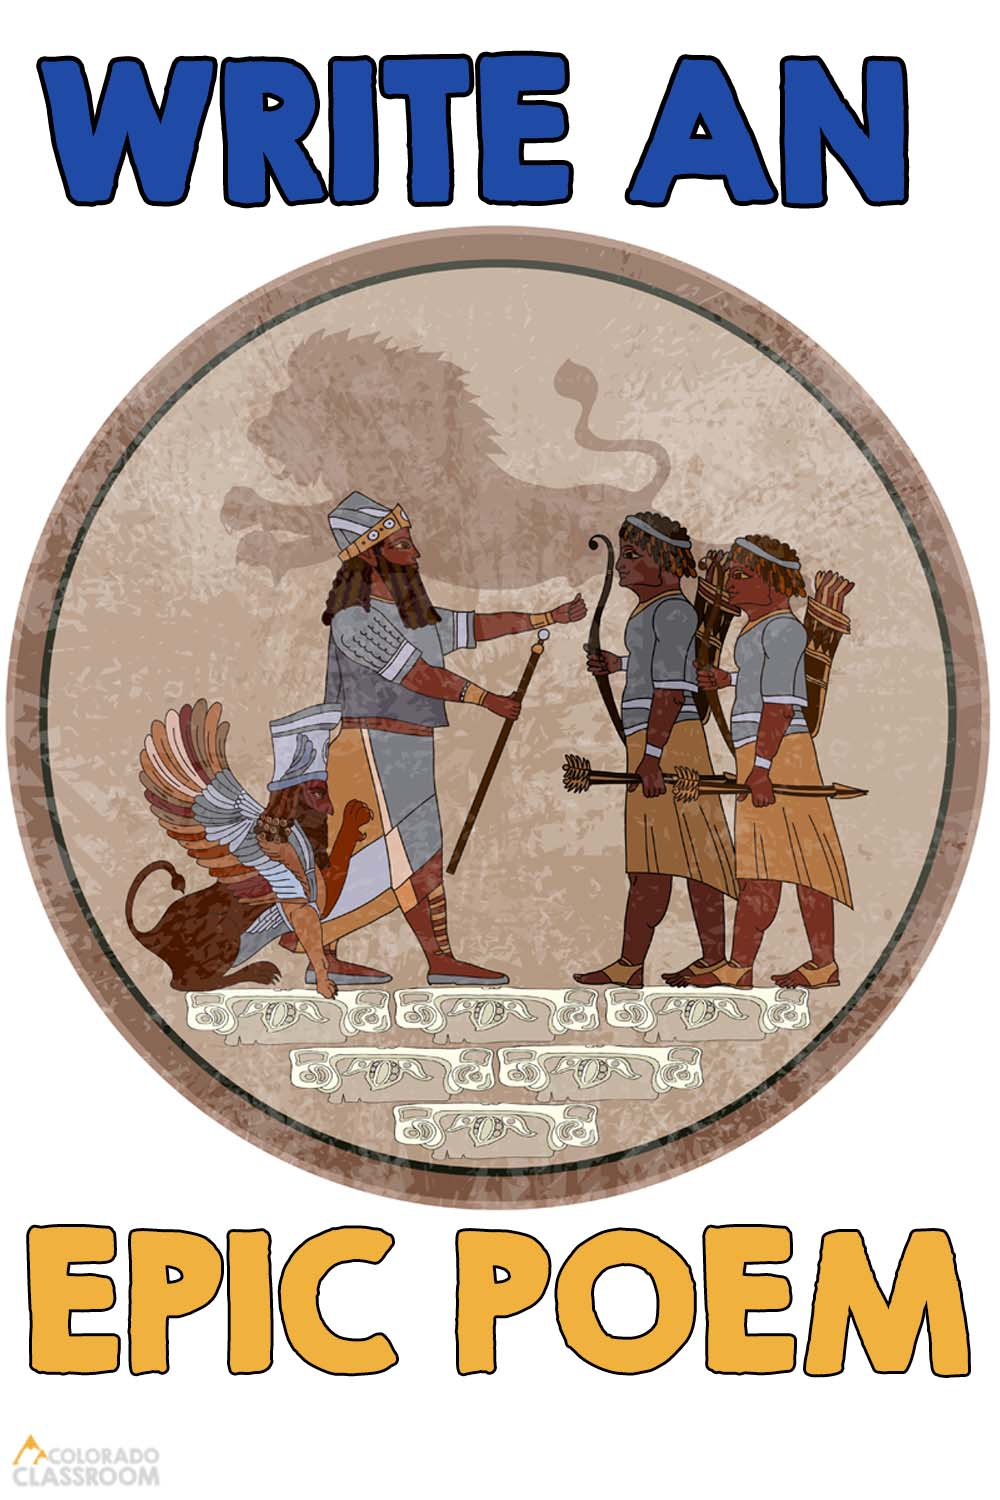 """A circular art piece from ancient Mesopotamia of a king talking to his two sons, with the text """"Write an Epic Poem"""" across the top and the """"Colorado Classroom"""" logo in the bottom left."""